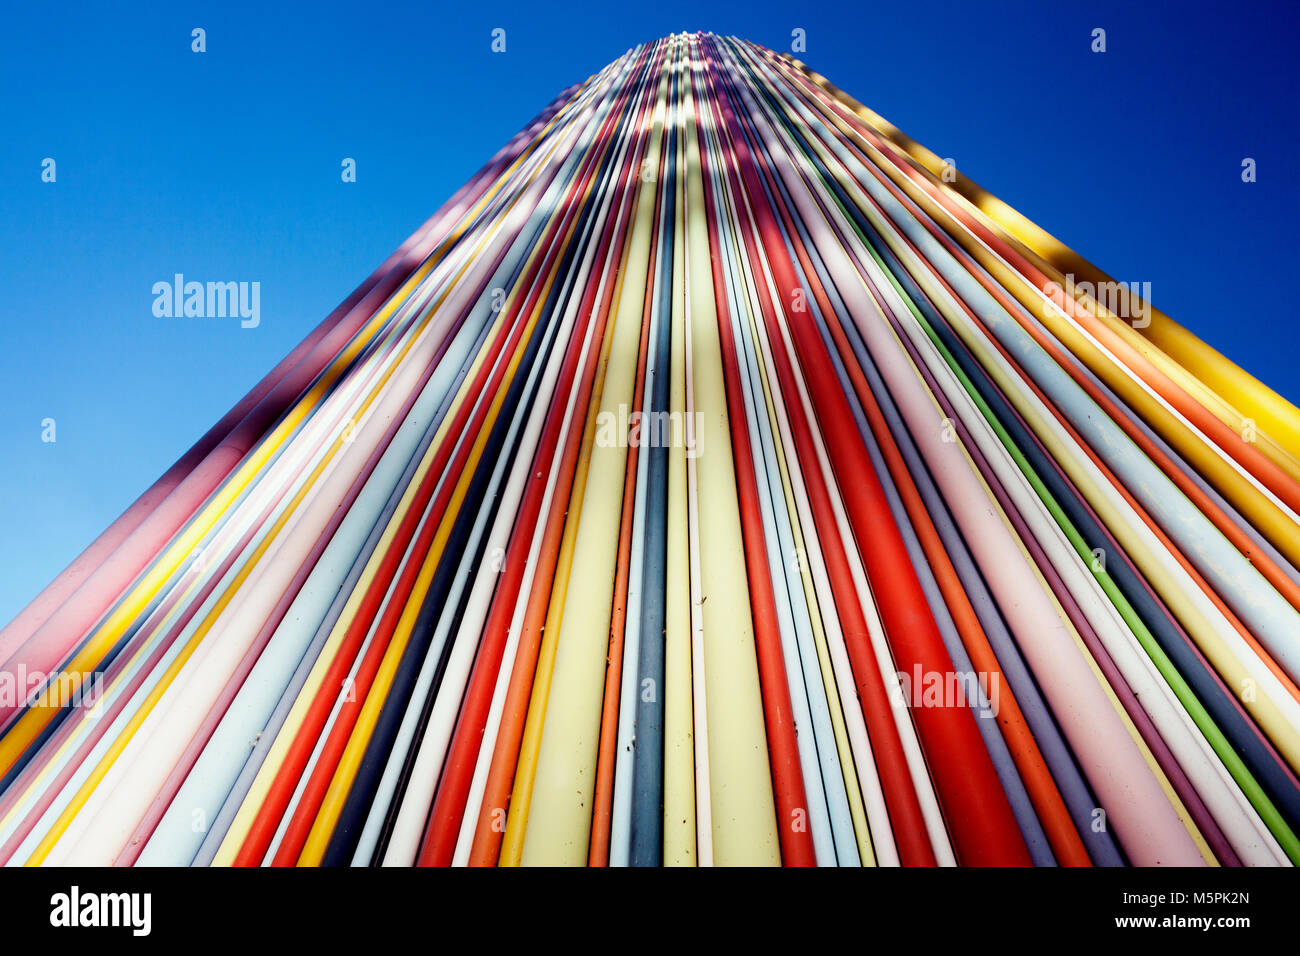 A low angle perspective view of colorful, modern and geometric built structure in Paris, France - Stock Image